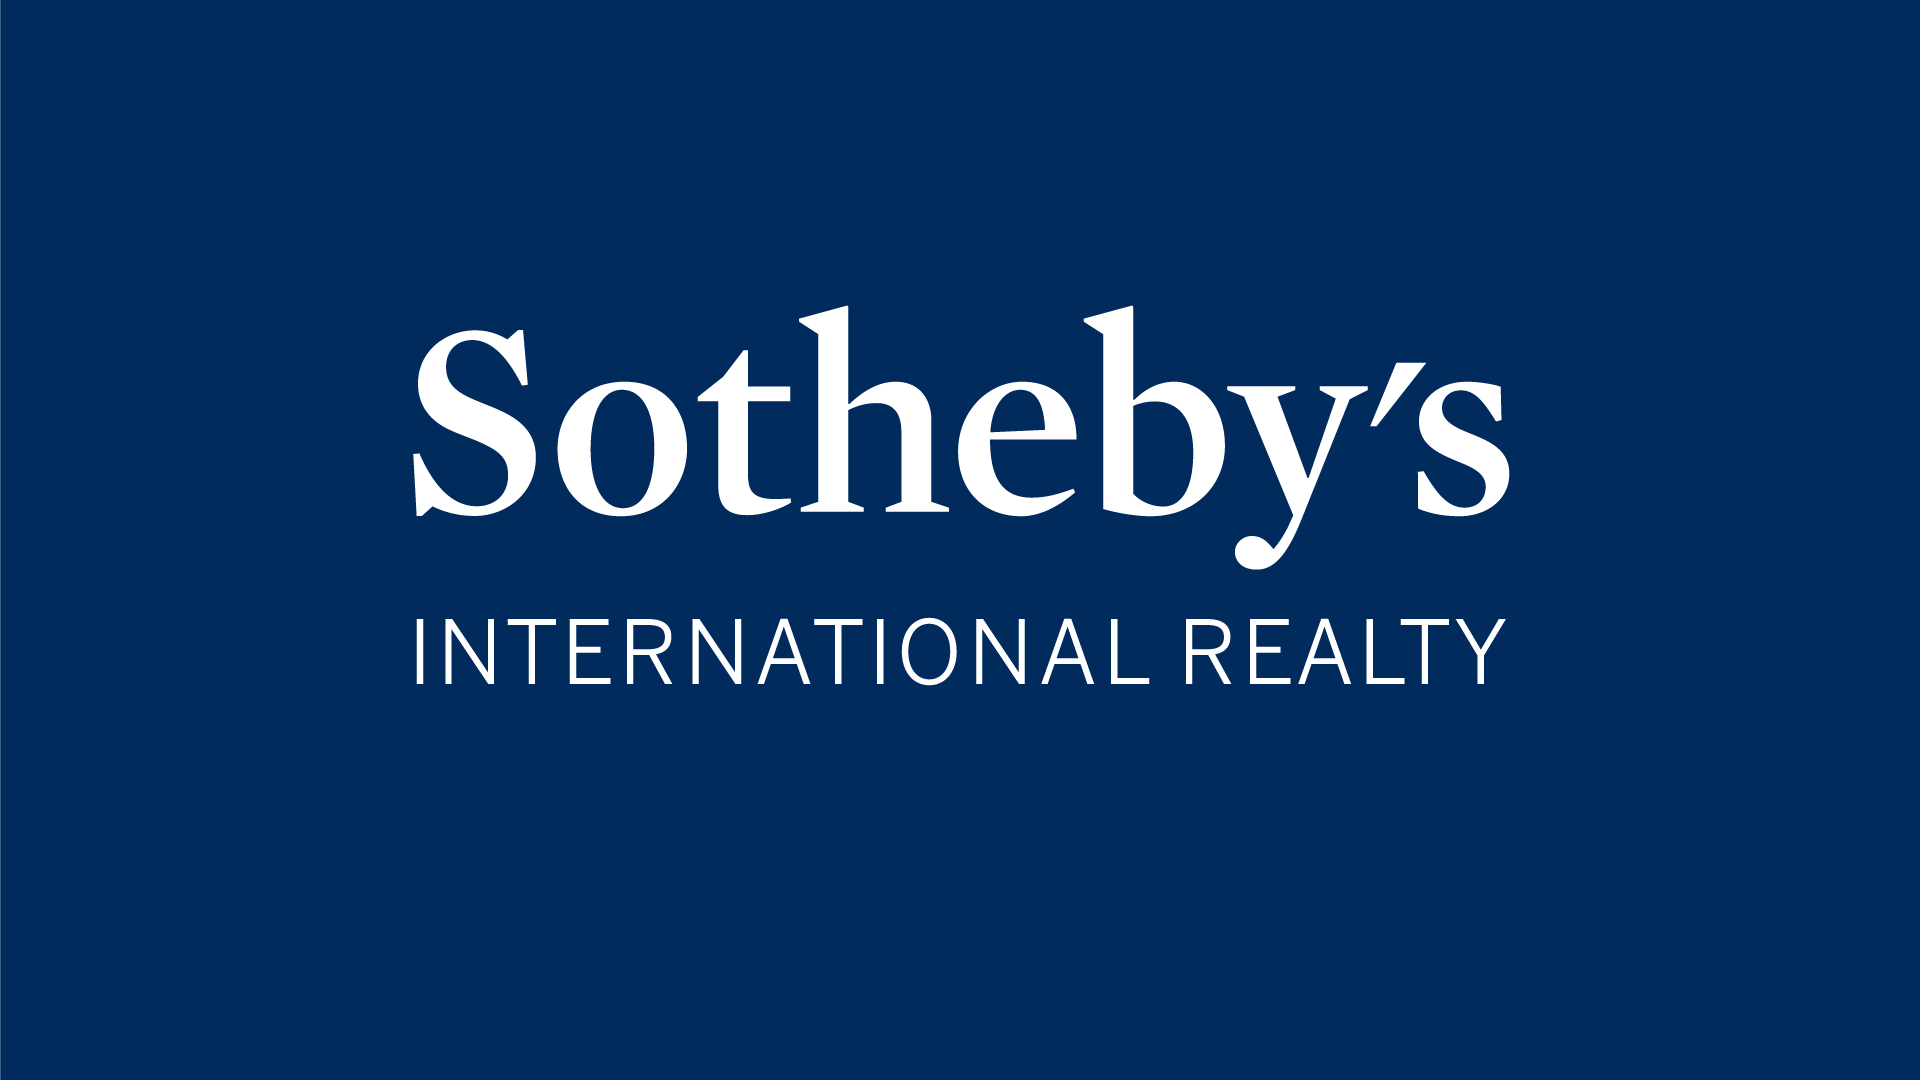 Sotheby's International Realty Recognized as Most Trusted Residential Real Estate Brokerage